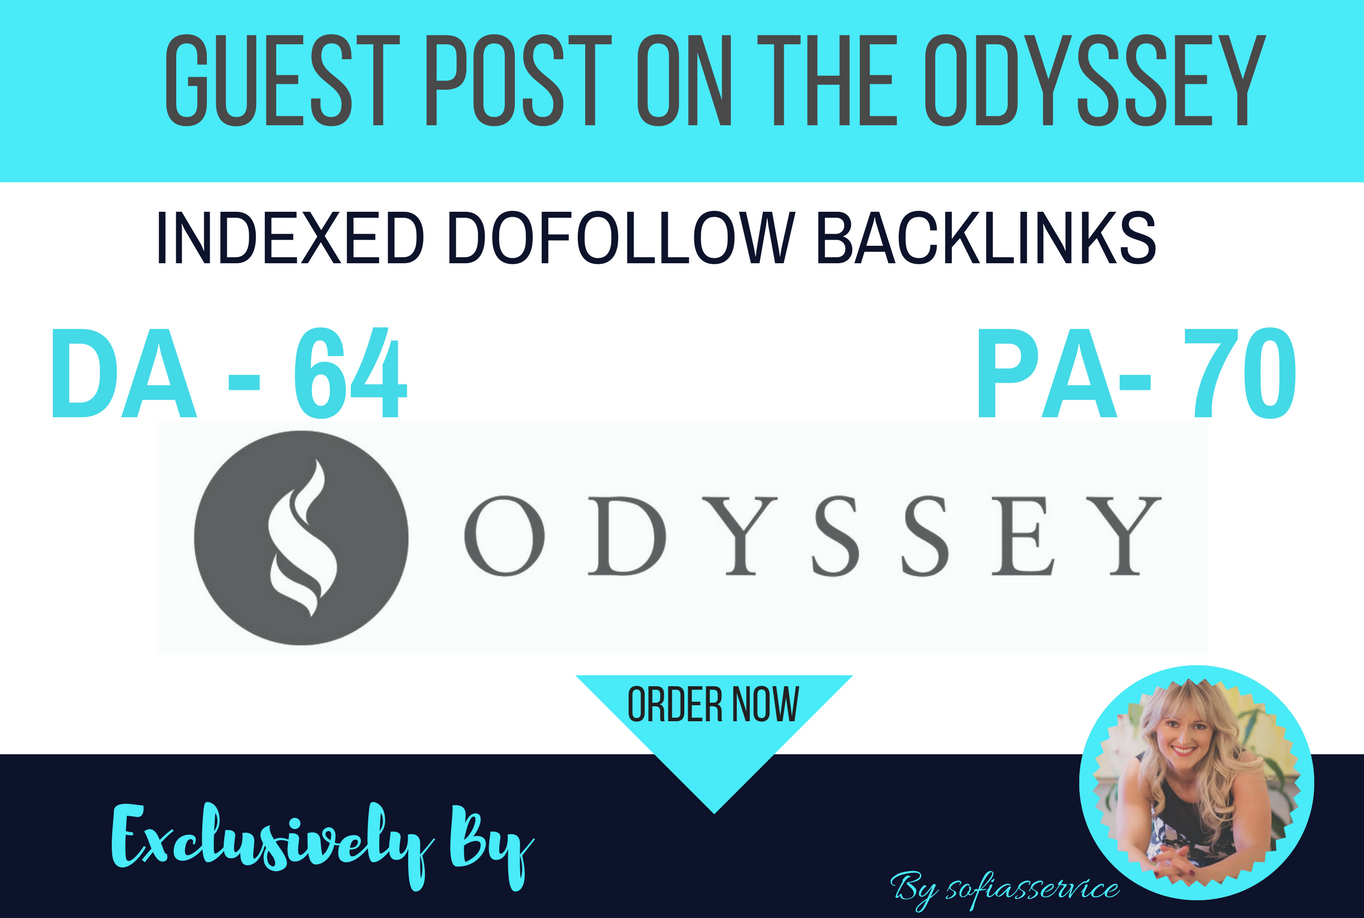 Publish An Influential Guest Post On THEODSSEY Da 64 Dofollow Backlinks